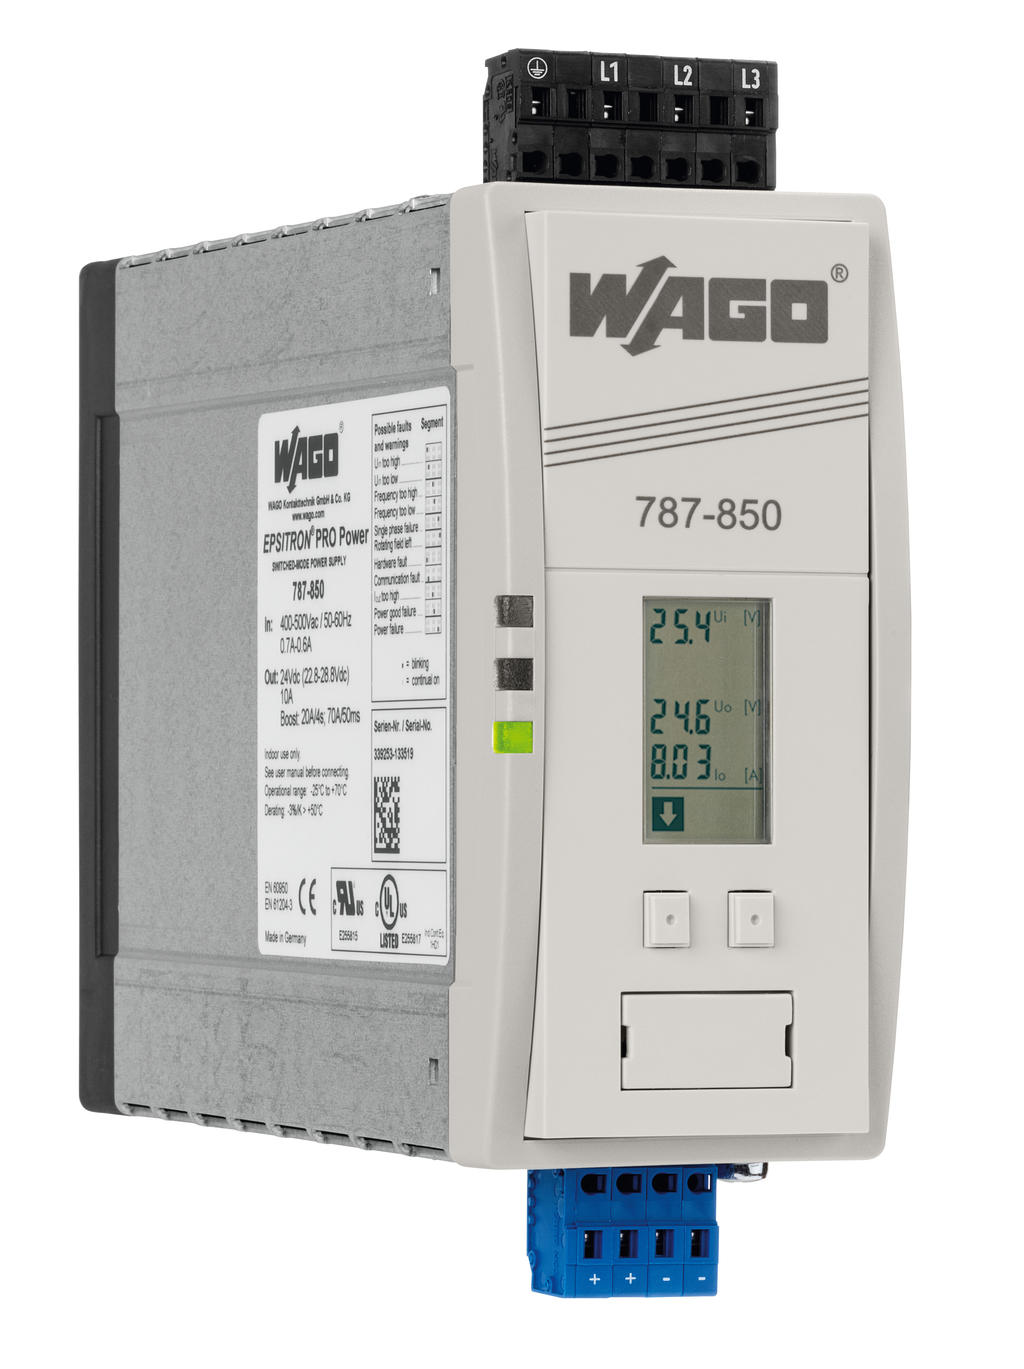 Wago Switched Mode Power Supply 787 850 Current Sensing Relay Nz Epsitron Pro 3 Phase 24 Vdc Output Voltage 10 A Topboost Powerboost Linemonitor Dc Ok Signal